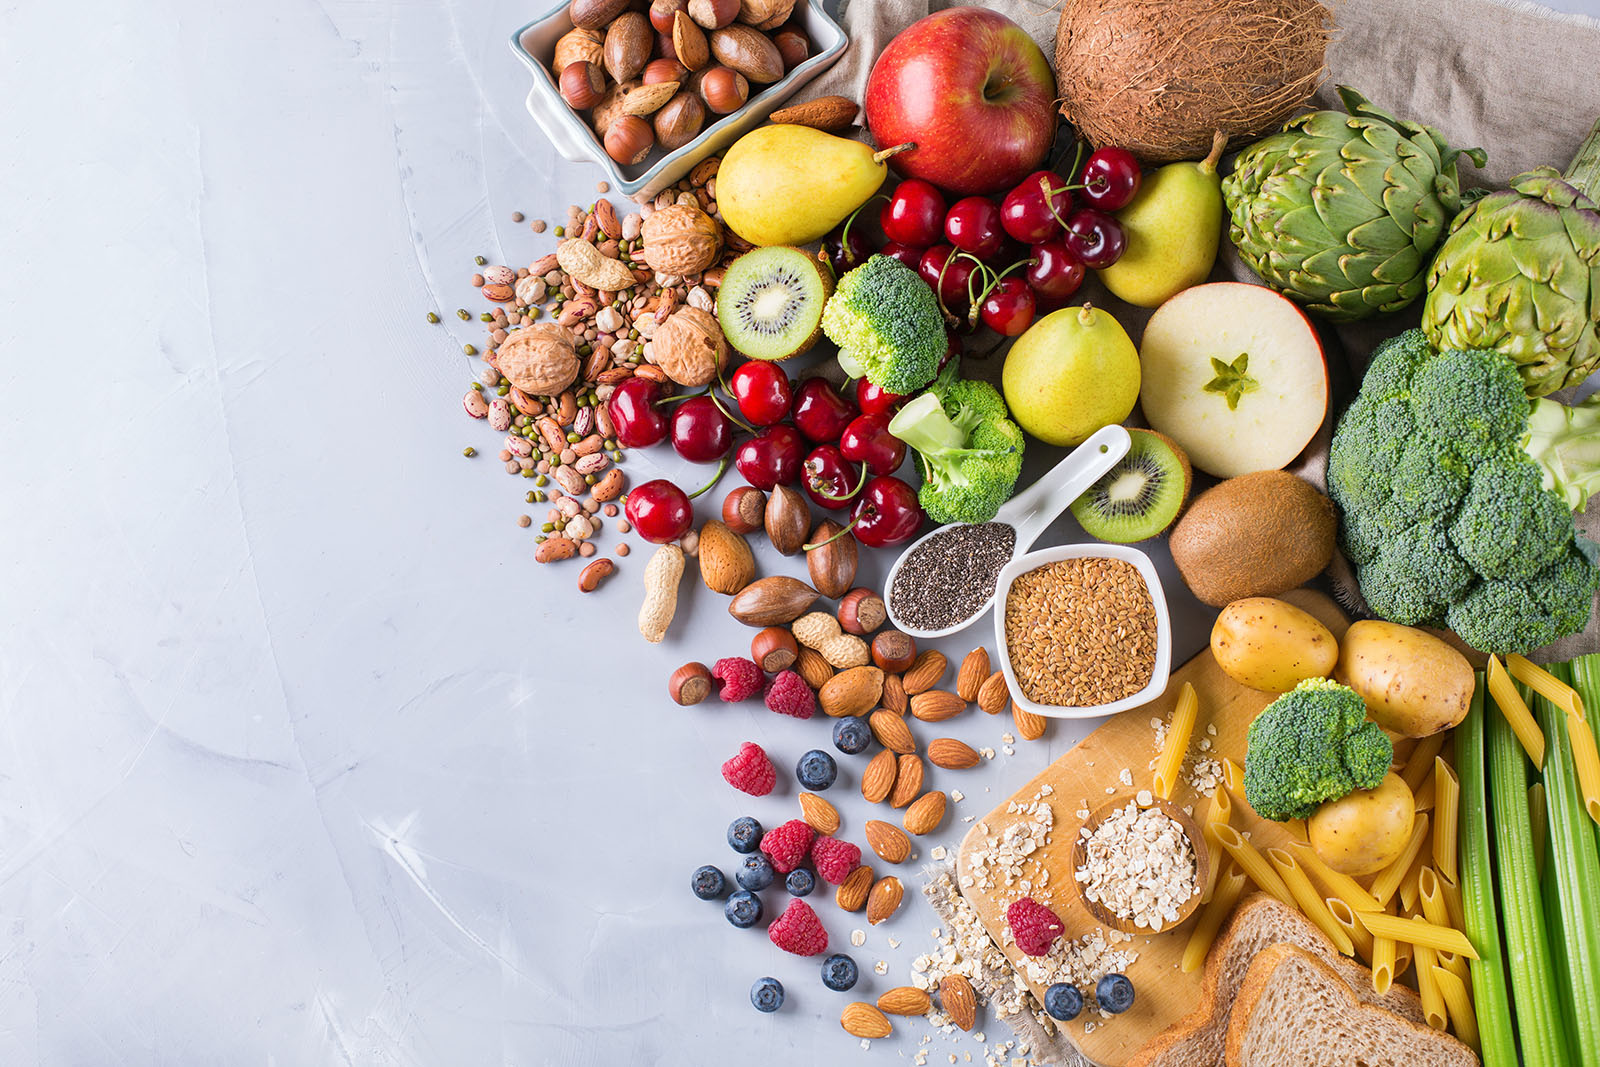 Do Nutrition Scientists and the Bible Agree on What Constitutes a Healthy Diet?